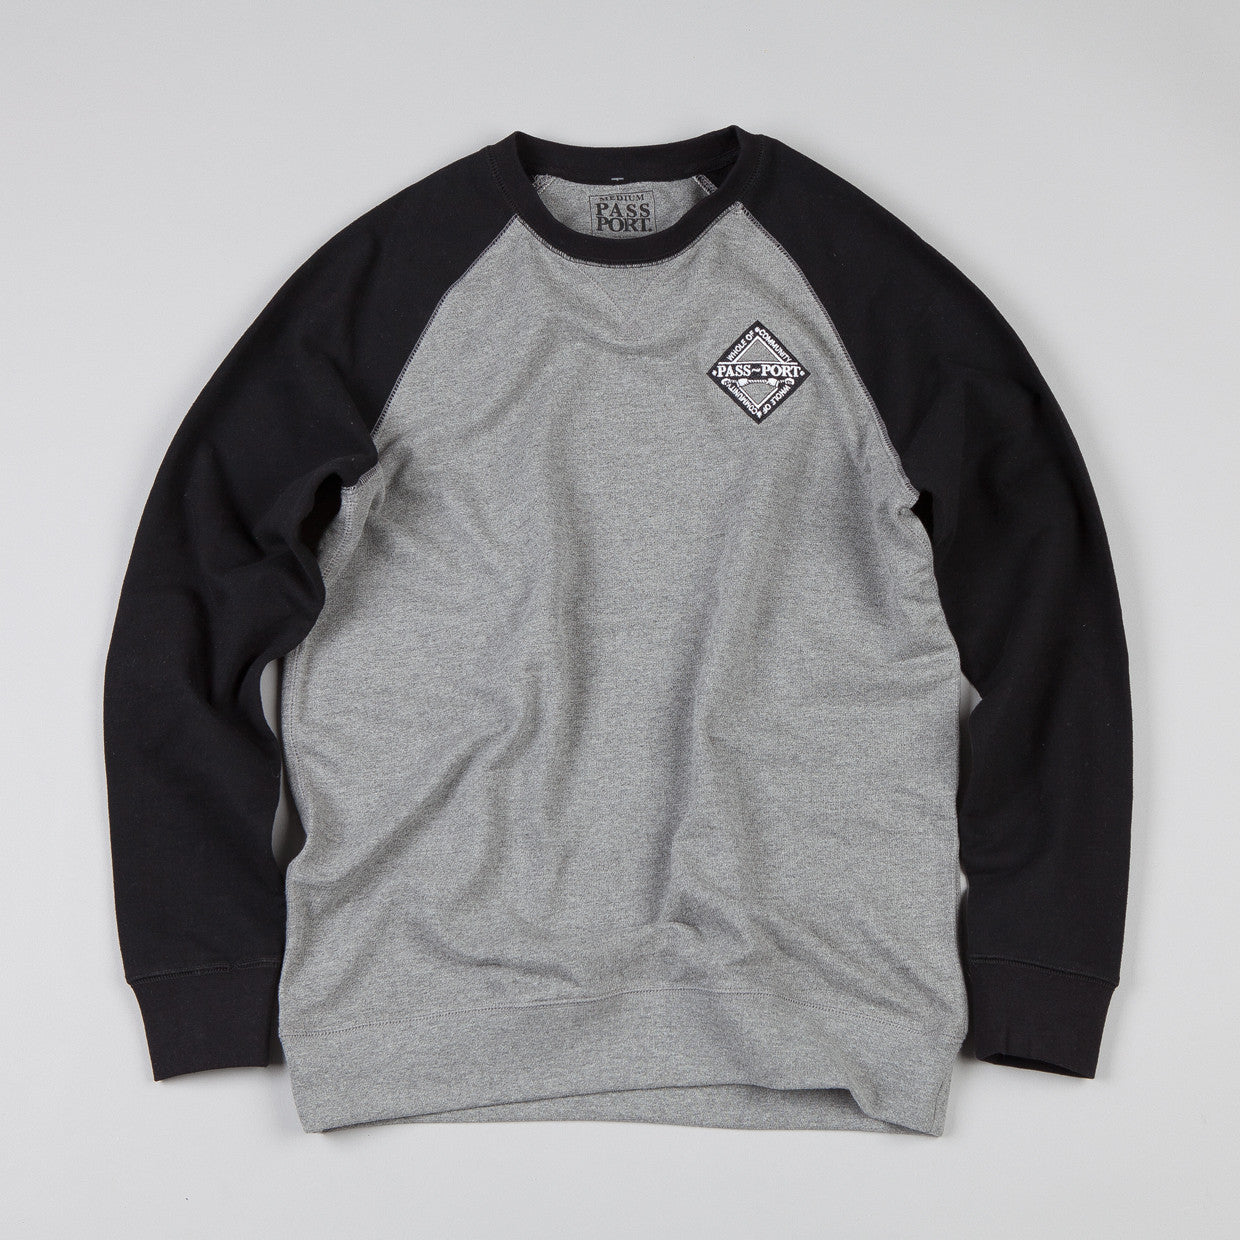 Pass Port Whole Community Crew neck Sweatshirt Black / Heather